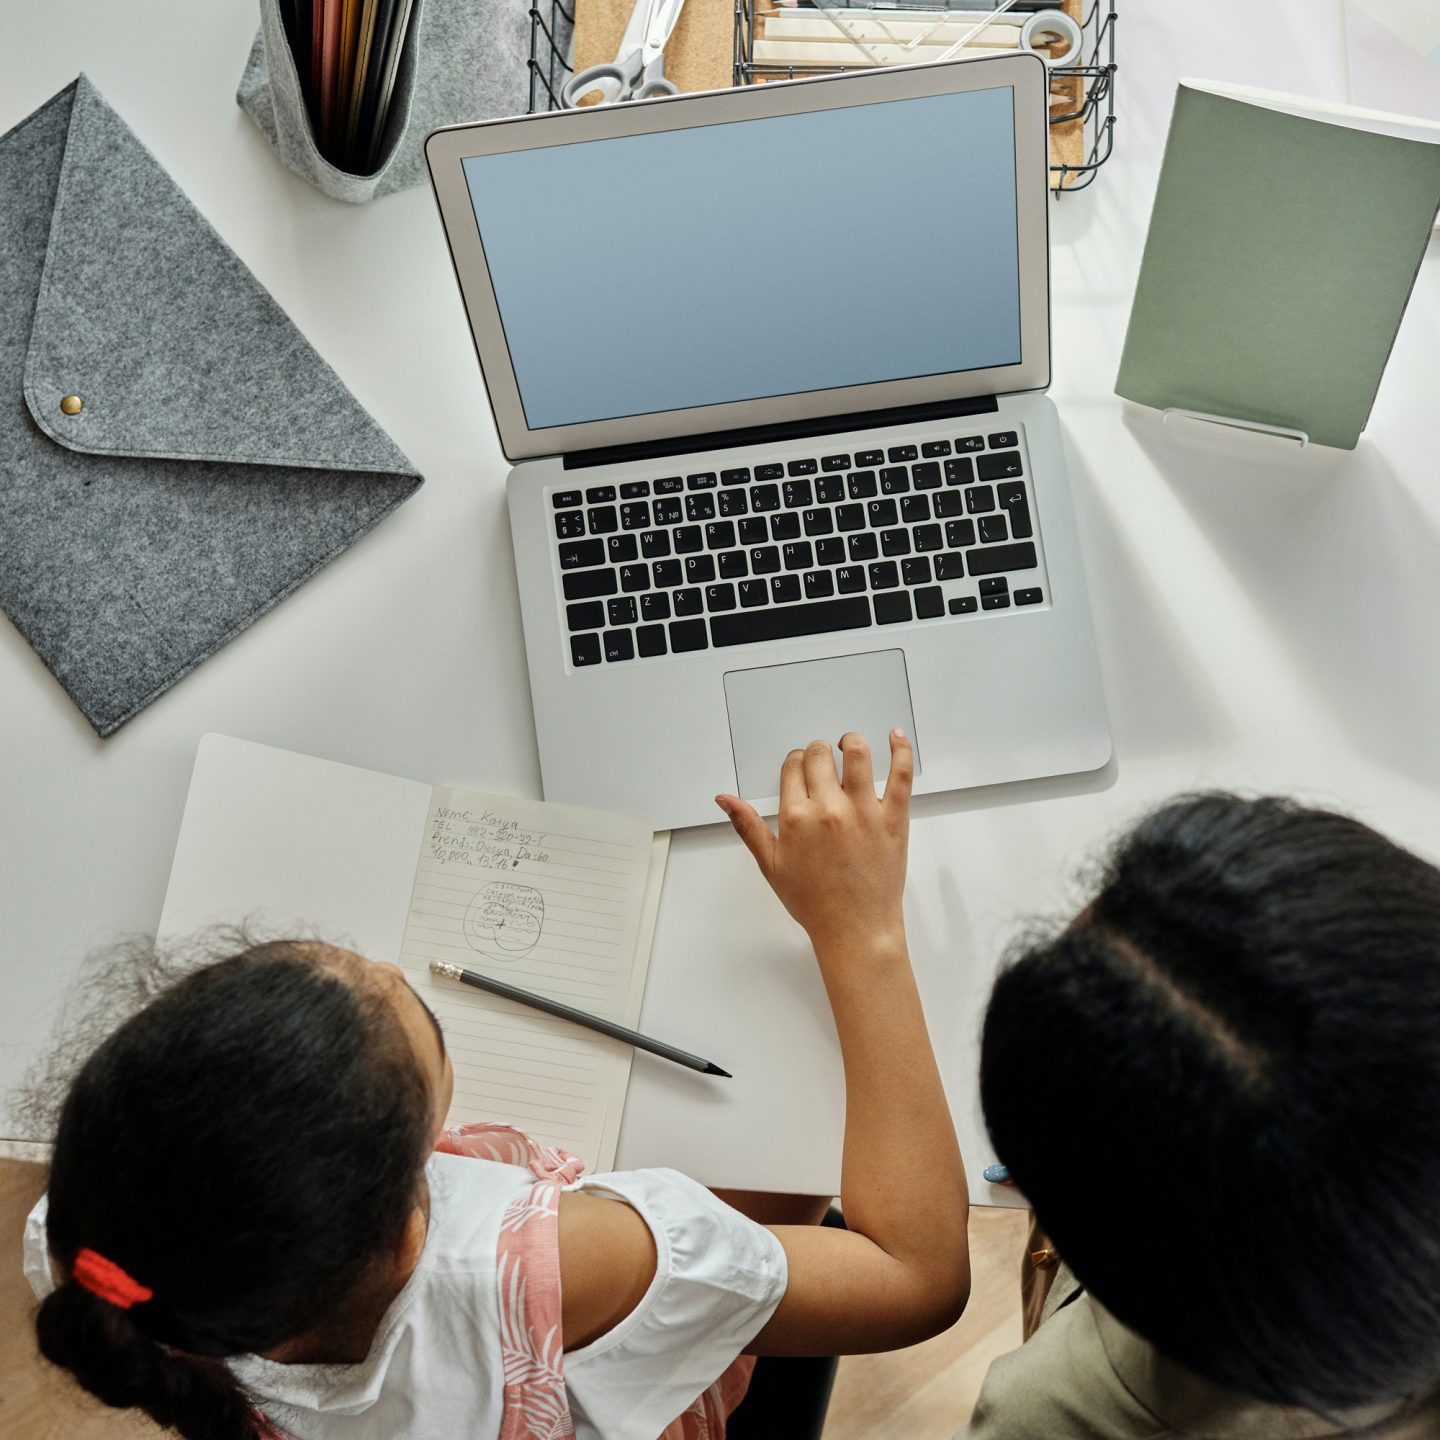 A child and a woman sit in front of a laptop on a white desk